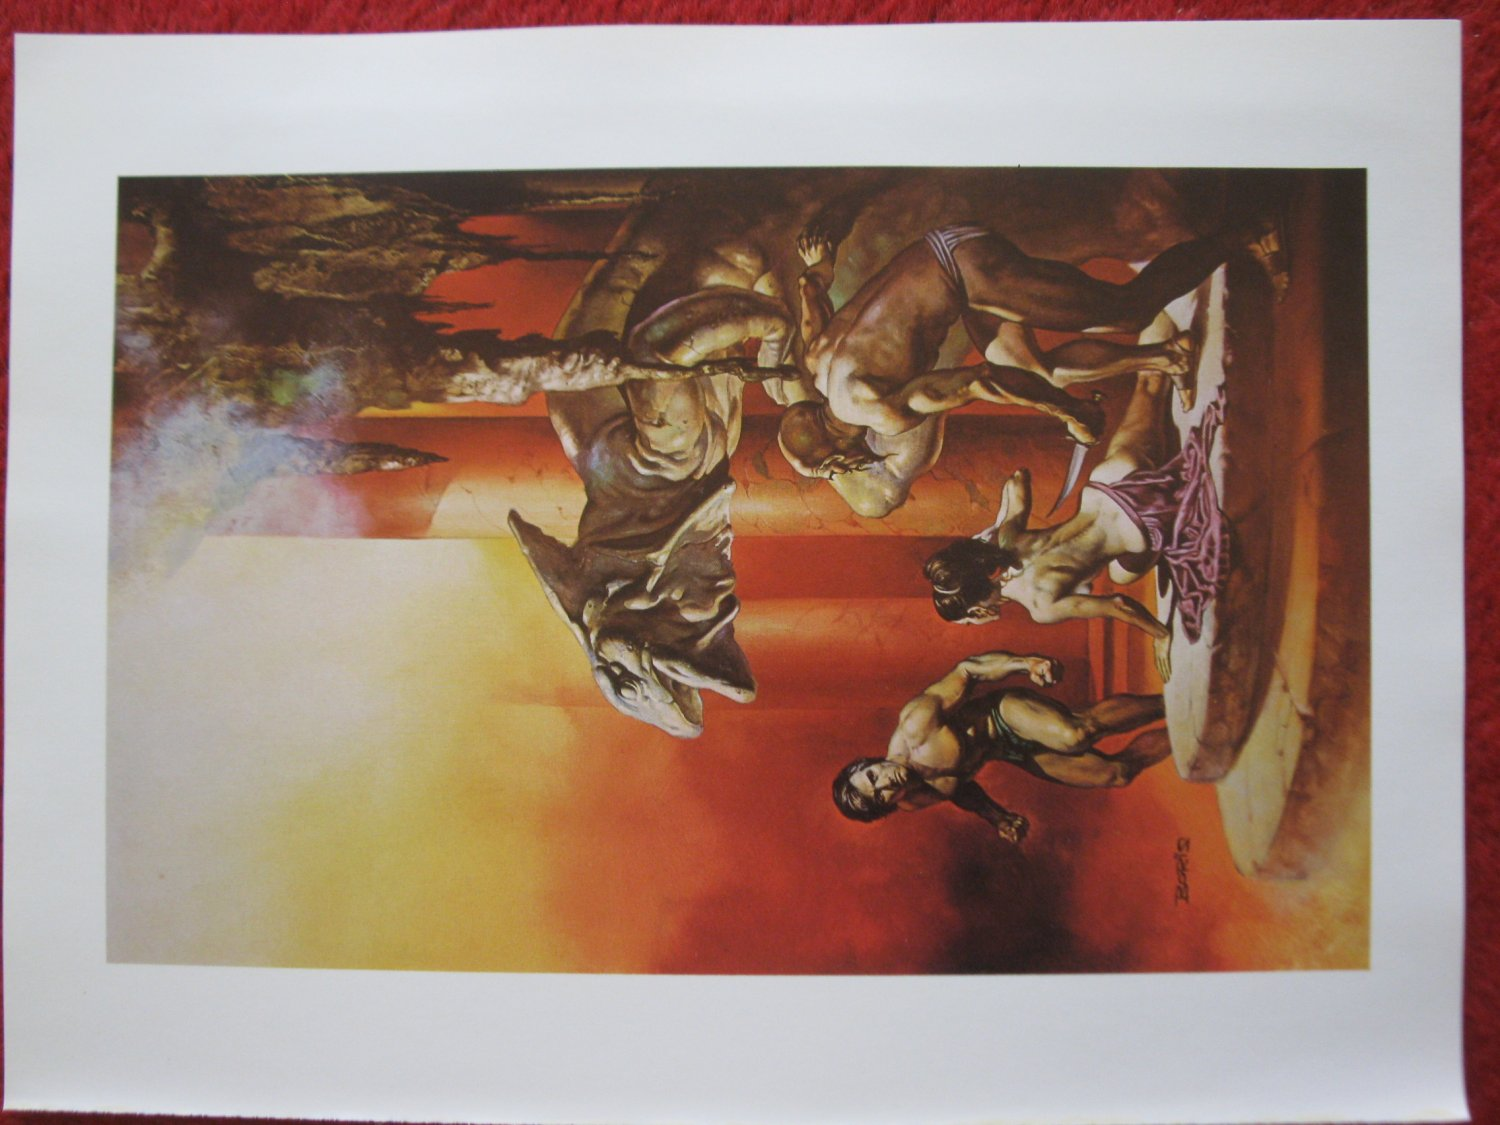 "vintage Boris Vallejo: The Best of Leigh Brackett - 11.5"" x 8.5"" Book Plate Print"